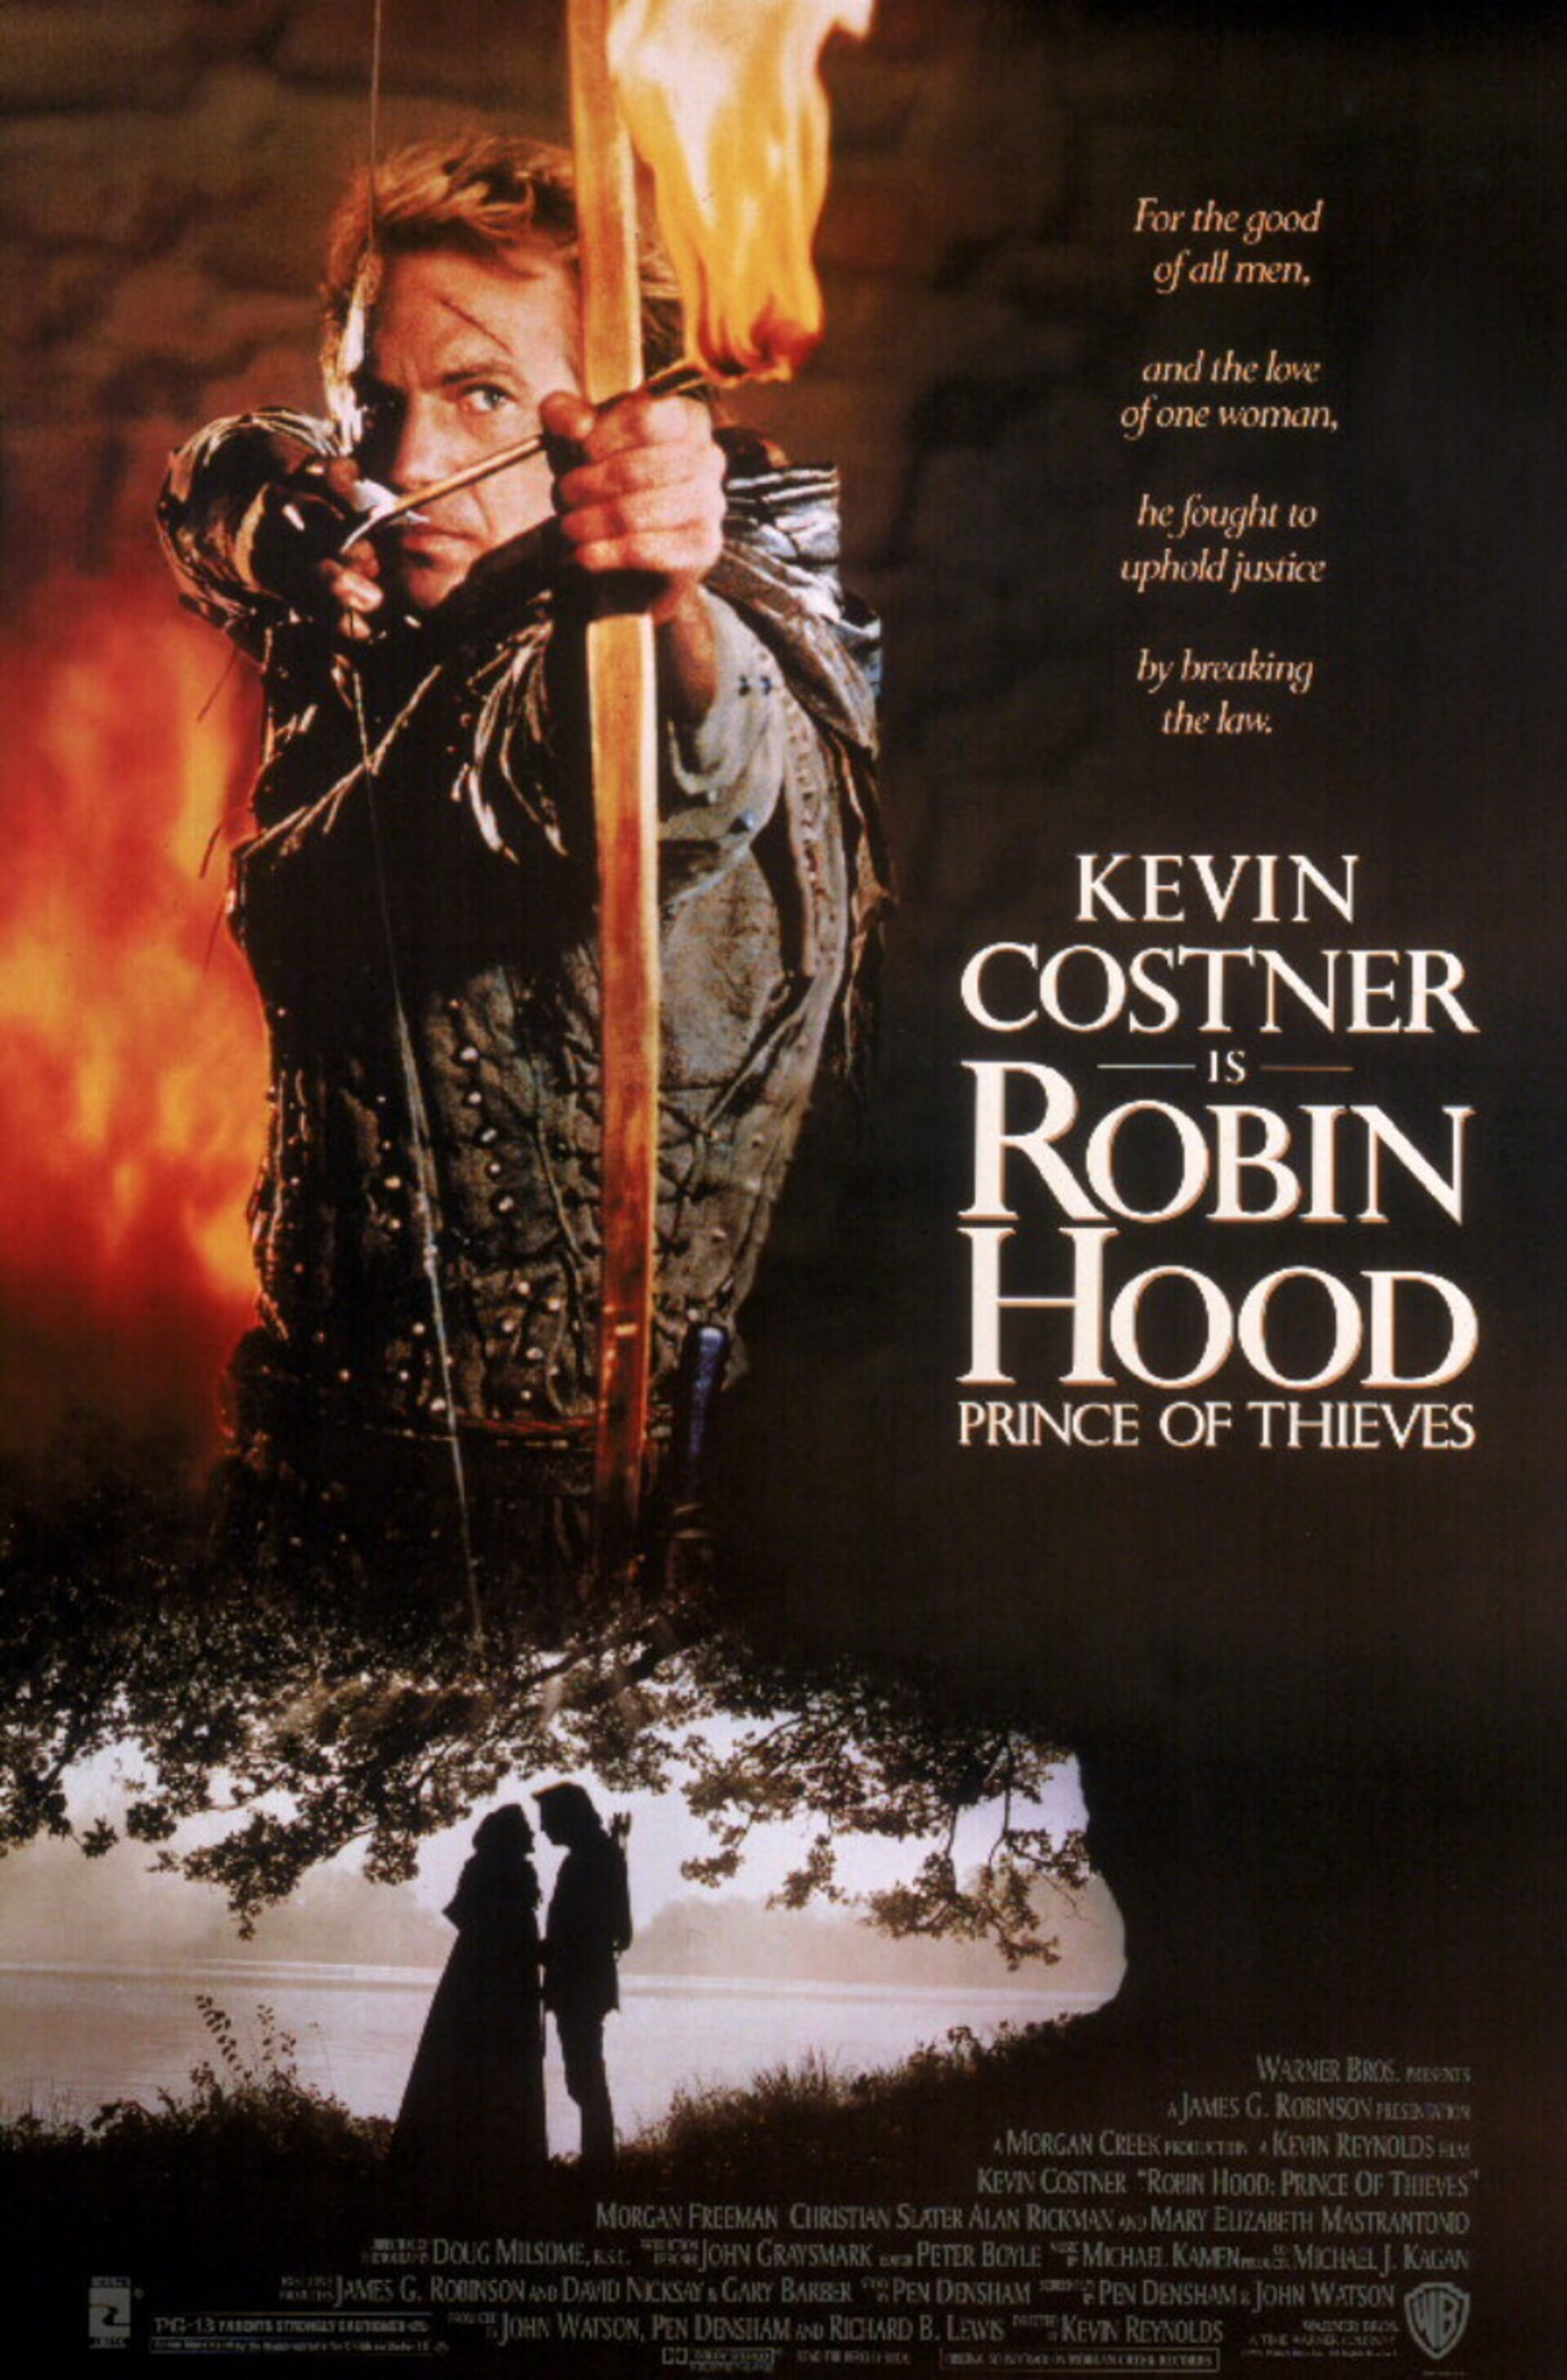 Robin Hood: Prince of Thieves - Poster 1